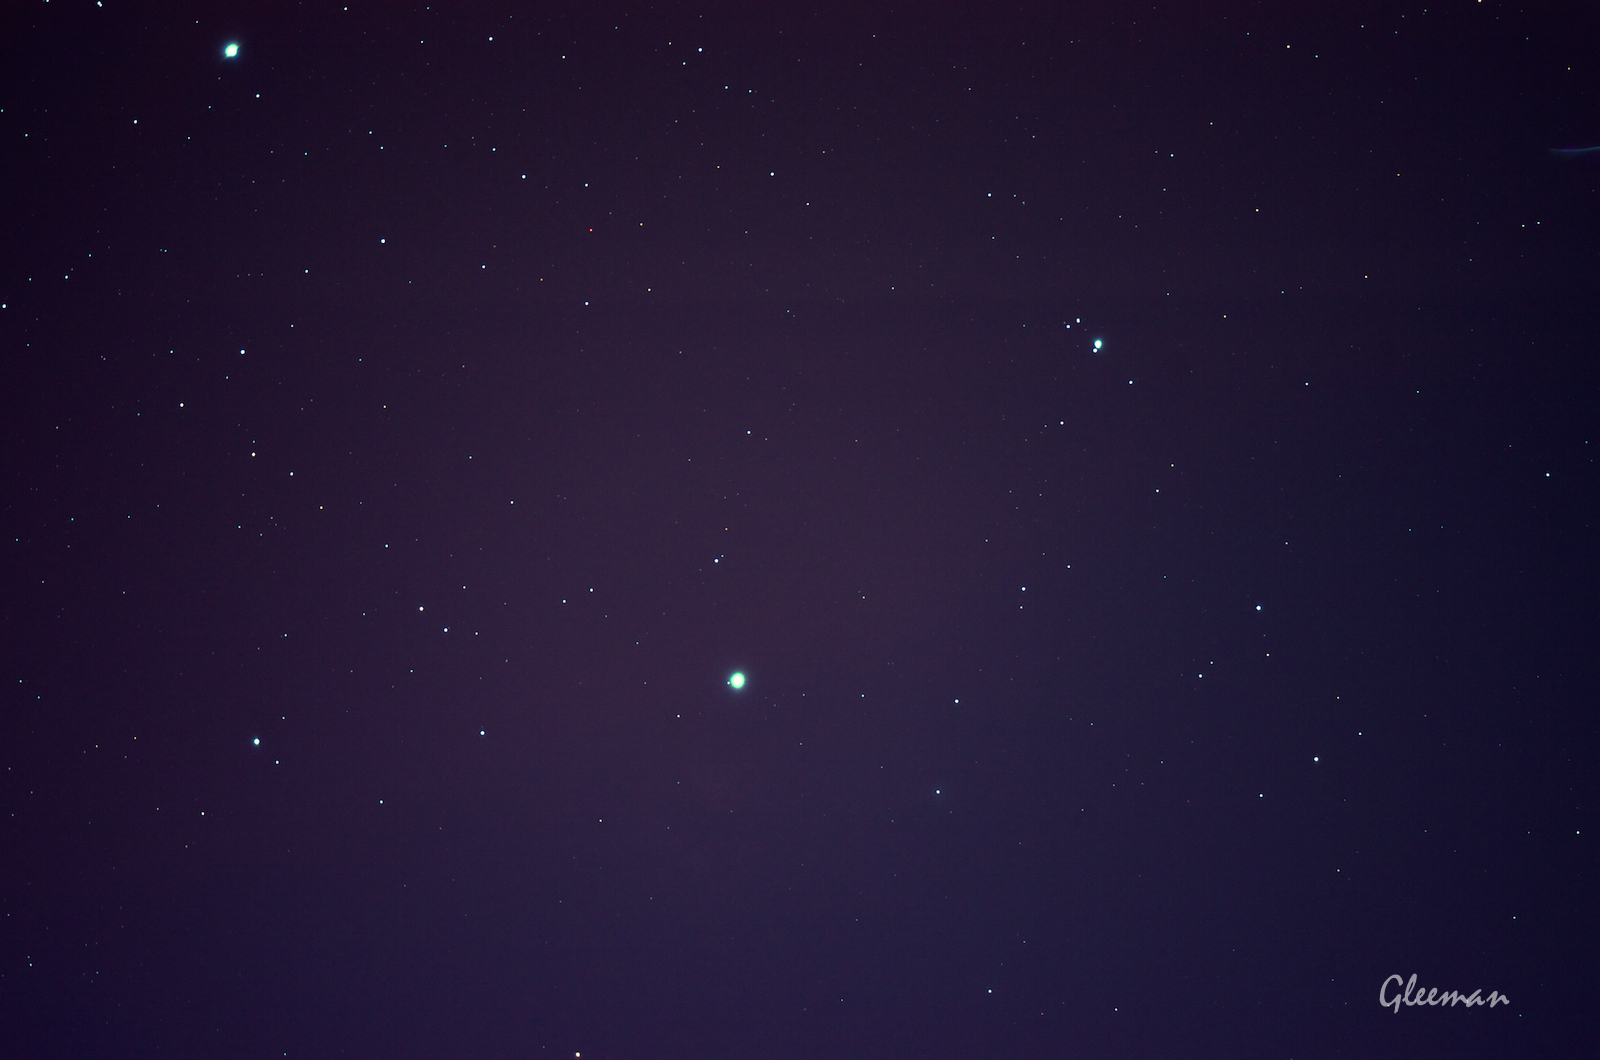 [Pentax MS-3赤道儀] 手動導星 manual guiding。Pentax 75SDHF+K5(等效750mm)。導星使用Vixen mini 60s(300mm) 加 televue 2.5x 加 LG-5。